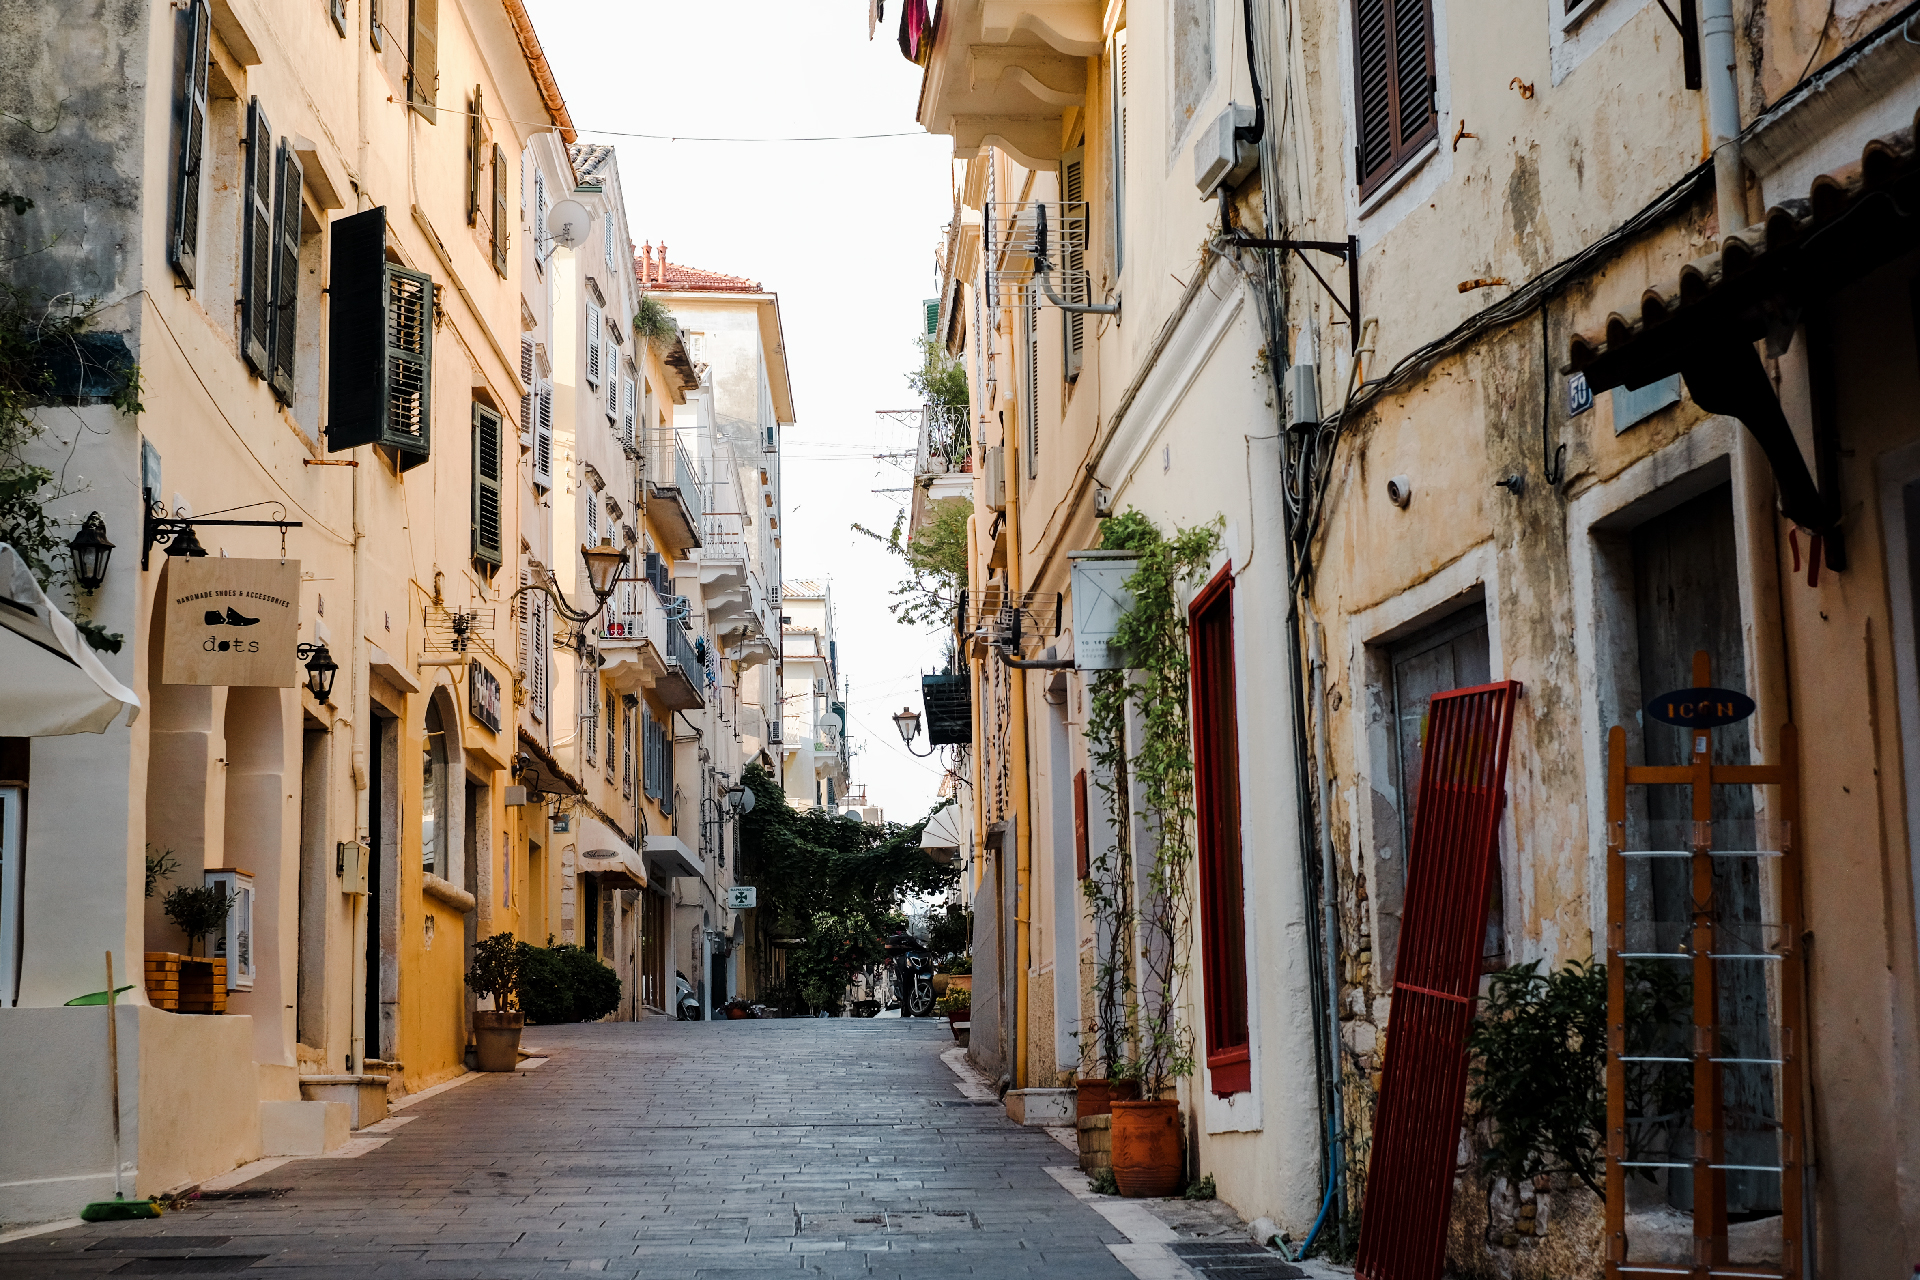 Street with yellow buildings in Corfu's old town. things to do in Corfu.